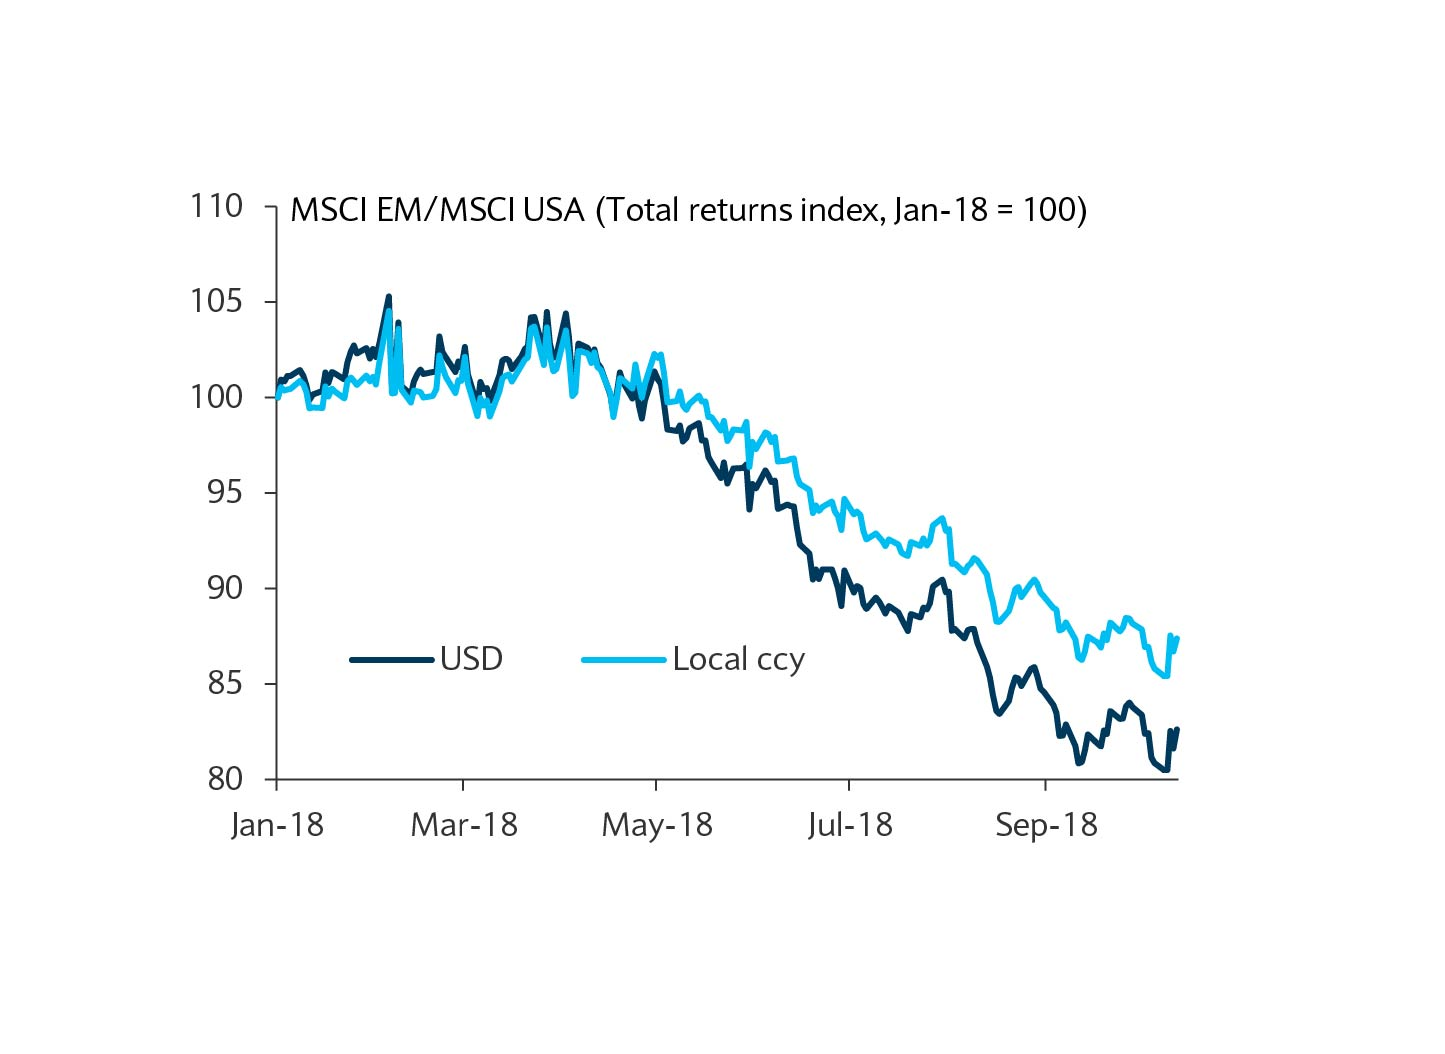 FX has contributed to EM's underperformance